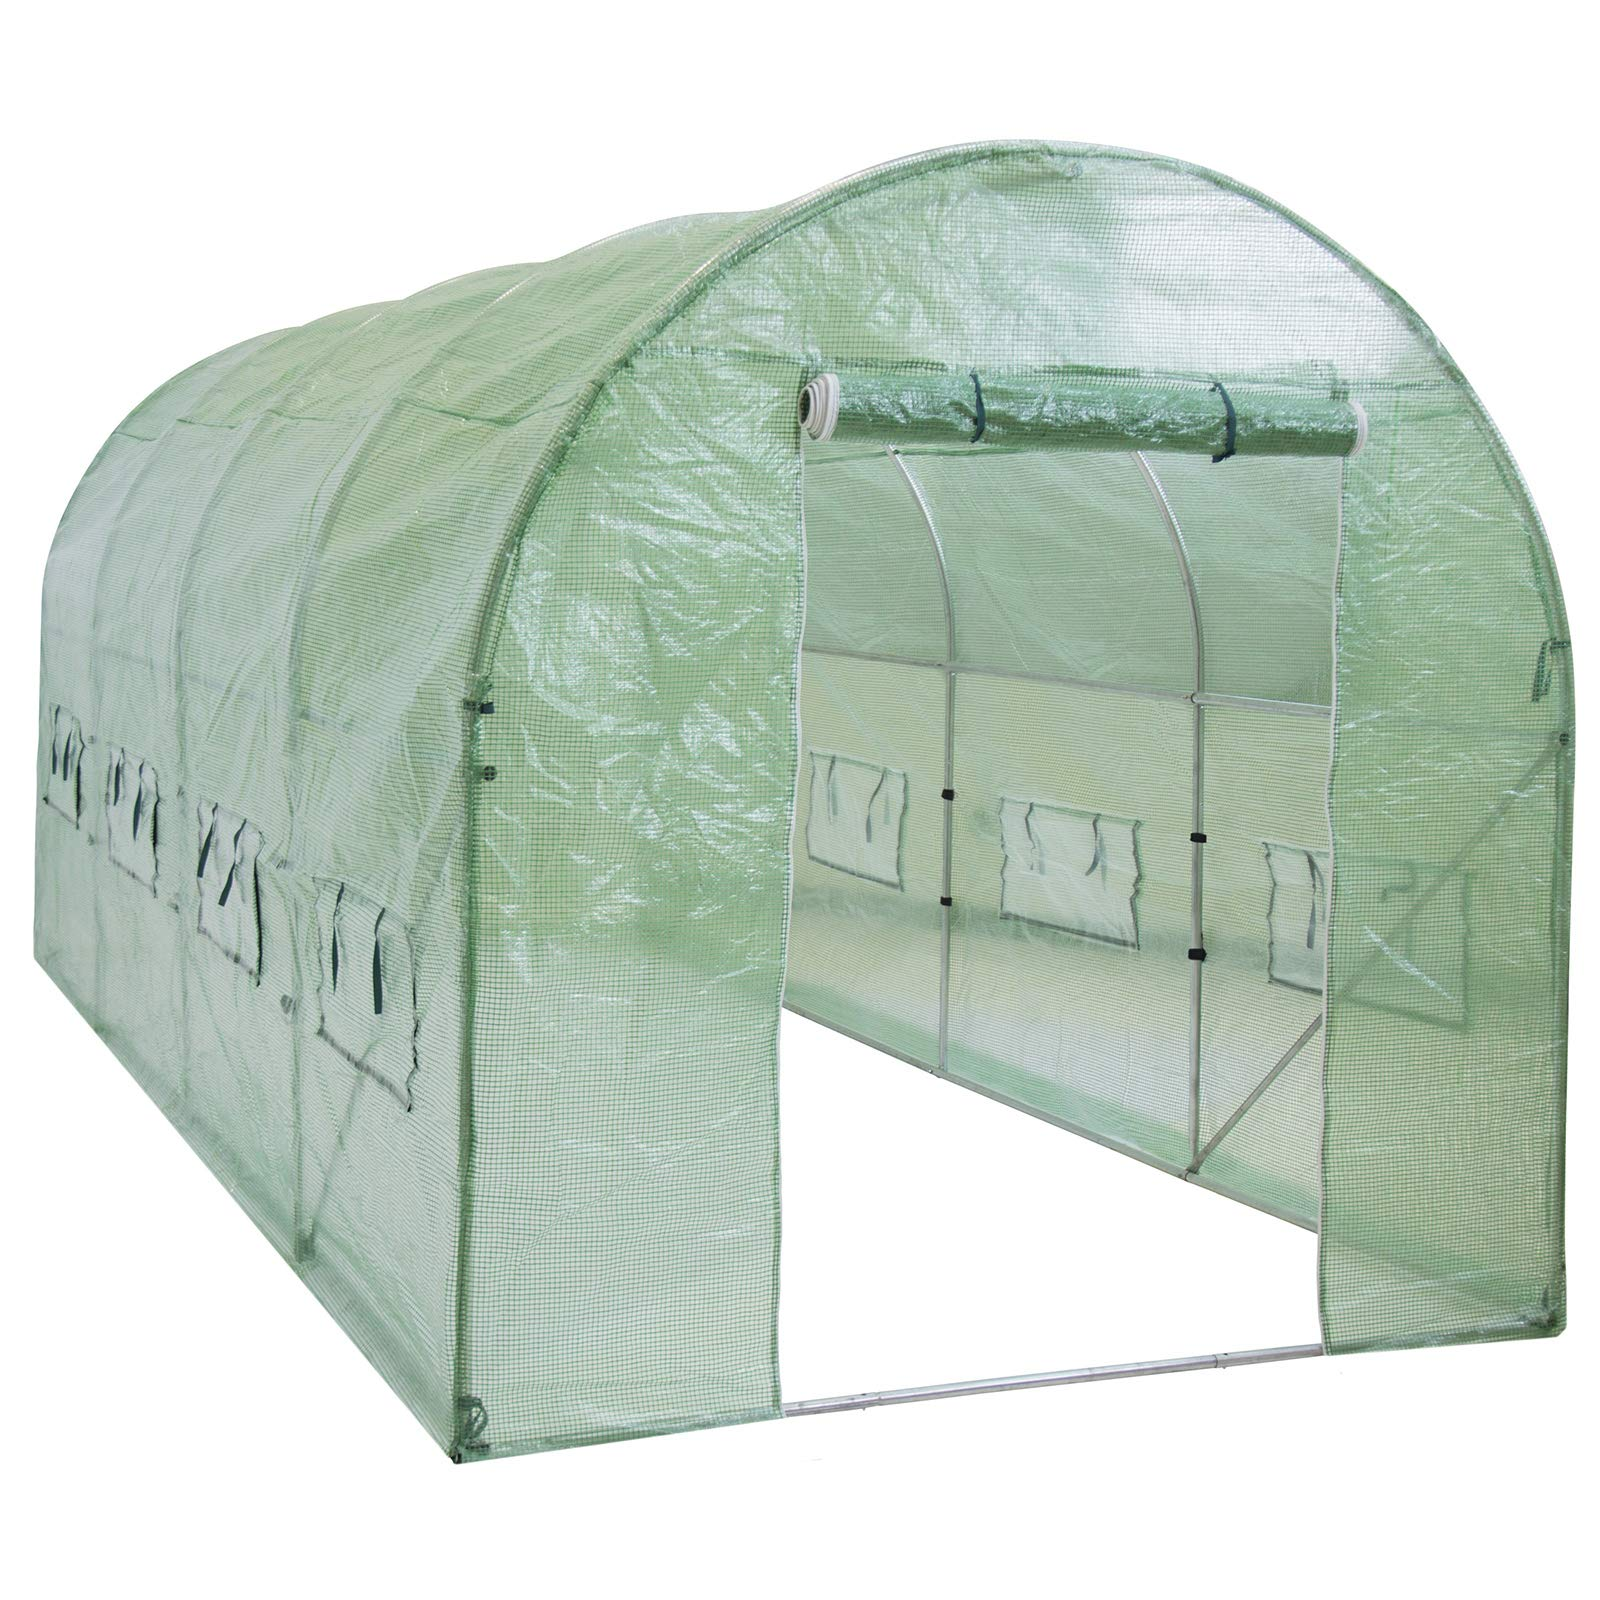 Best Choice Products 15x7x7ft Portable Large Walk in Tunnel Garden Plant Greenhouse Tent w/ 8 Ventilation Windows